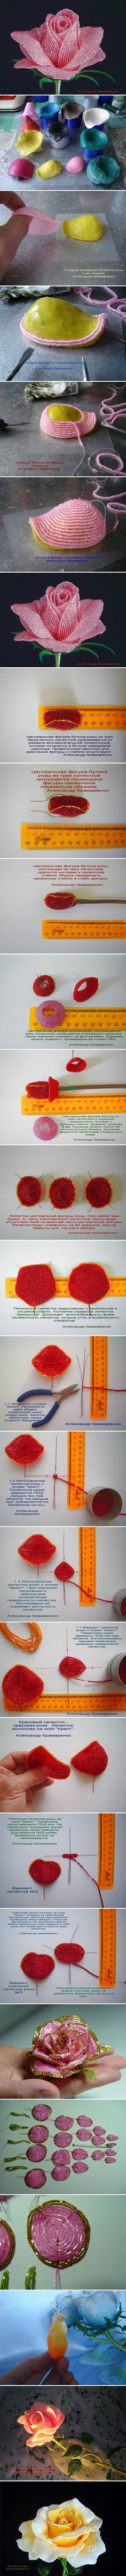 DIY French Beaded Rose DIY French Beaded Rose. //  THESE PICTURES ALONE ARE AN INCREDIBLE TUTORIAL!!! [Wish we could start with the one on the bottom!]  ♥A